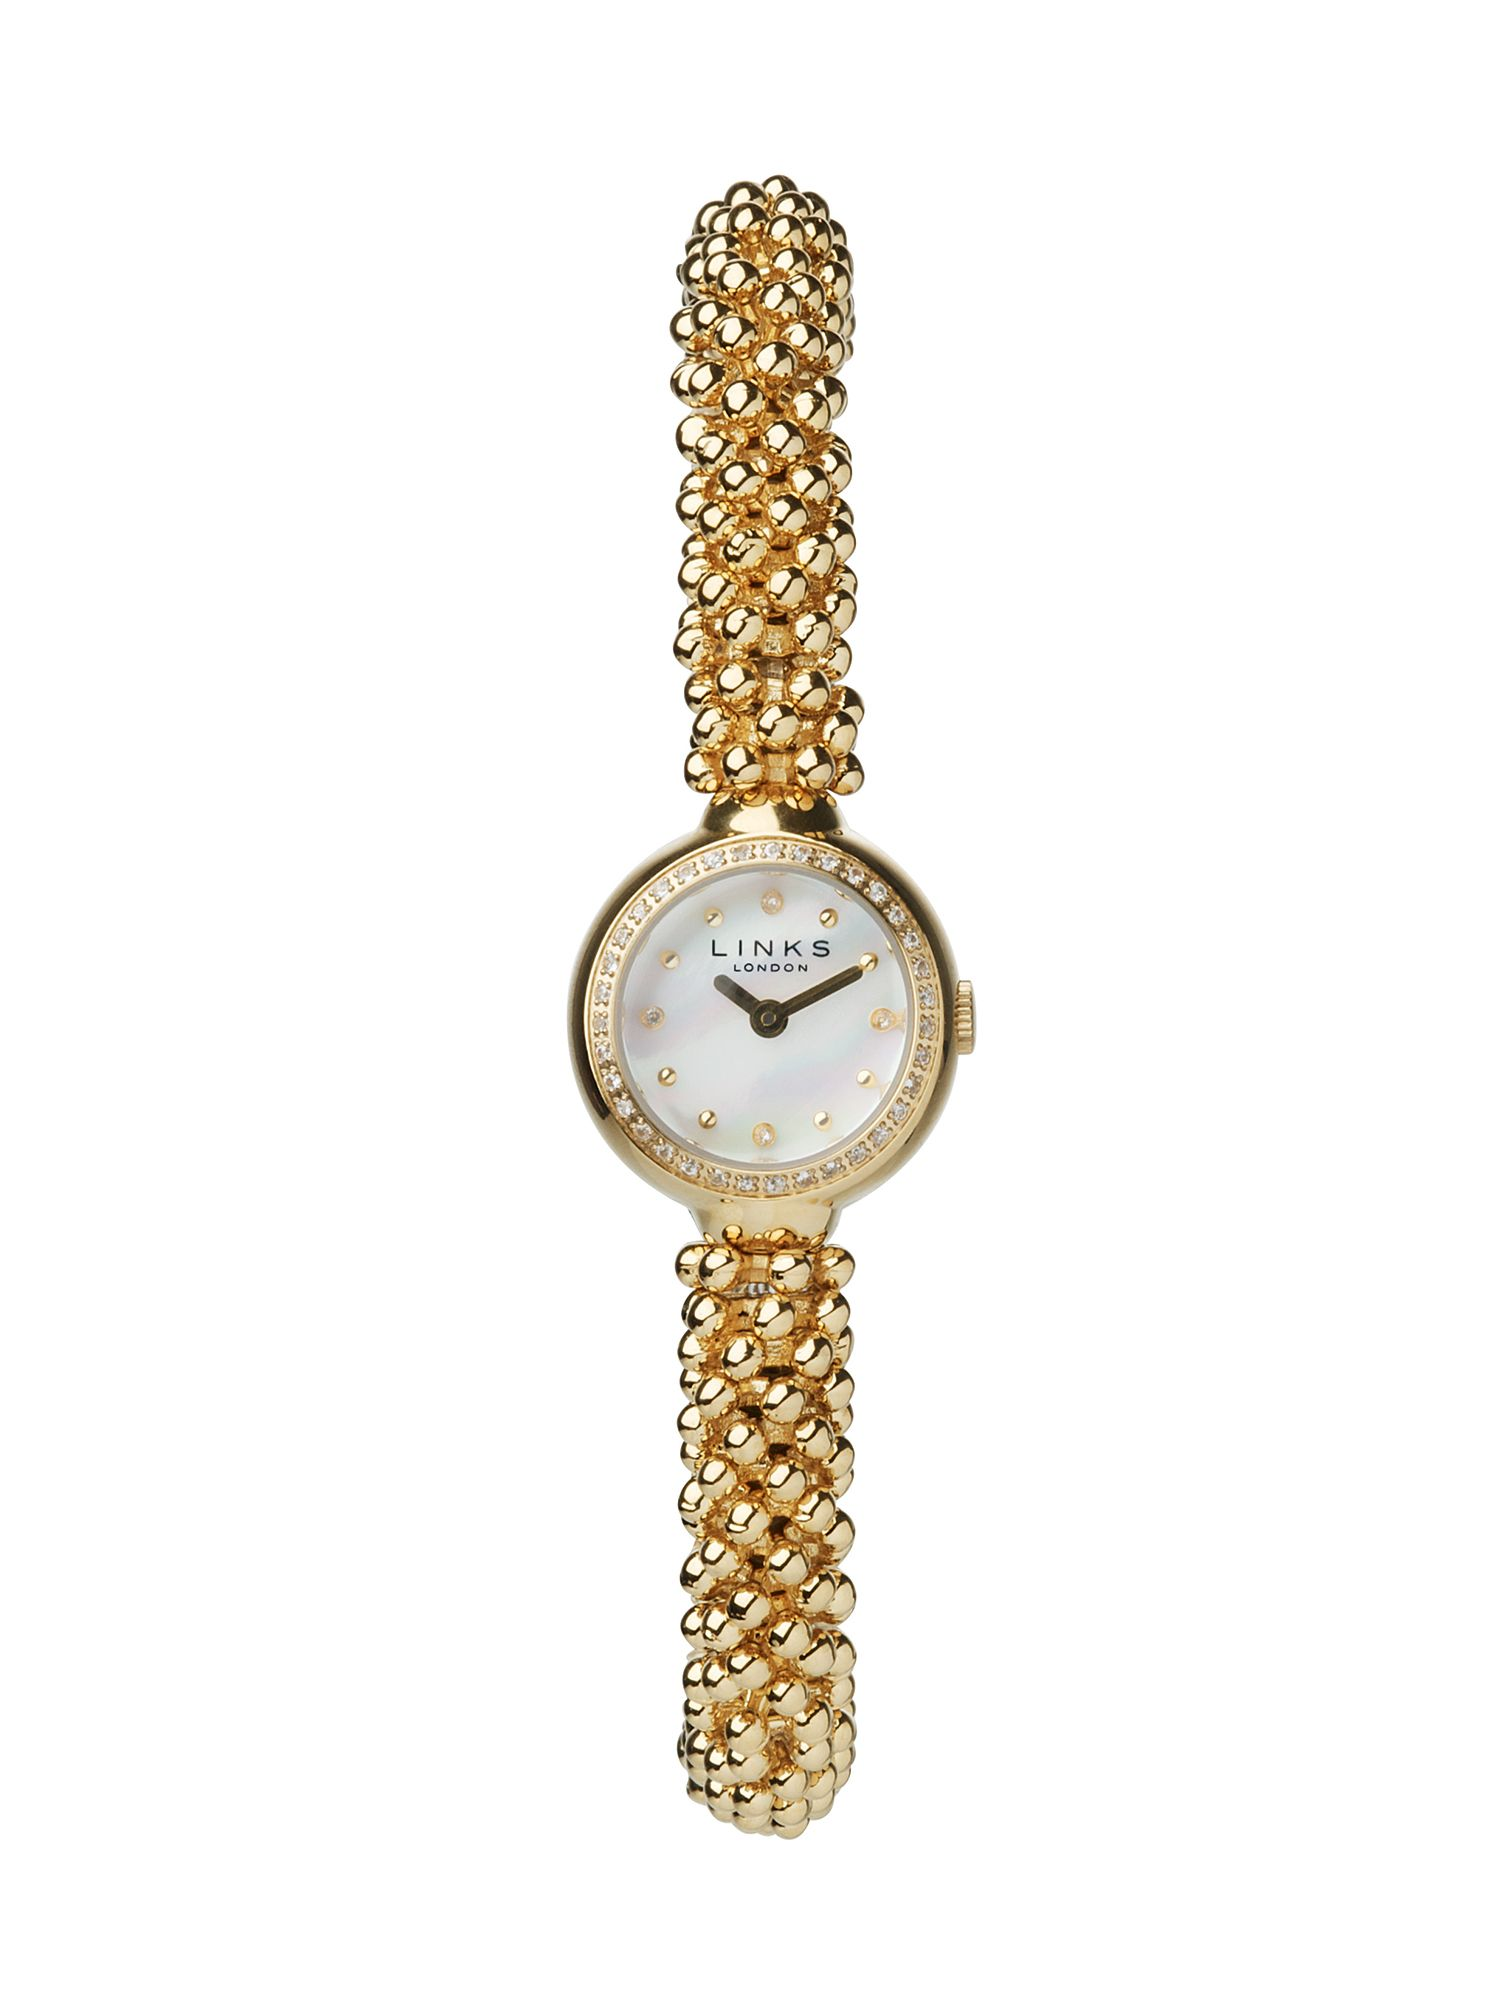 Links of London Effervescence Star Yellow Gold Watch